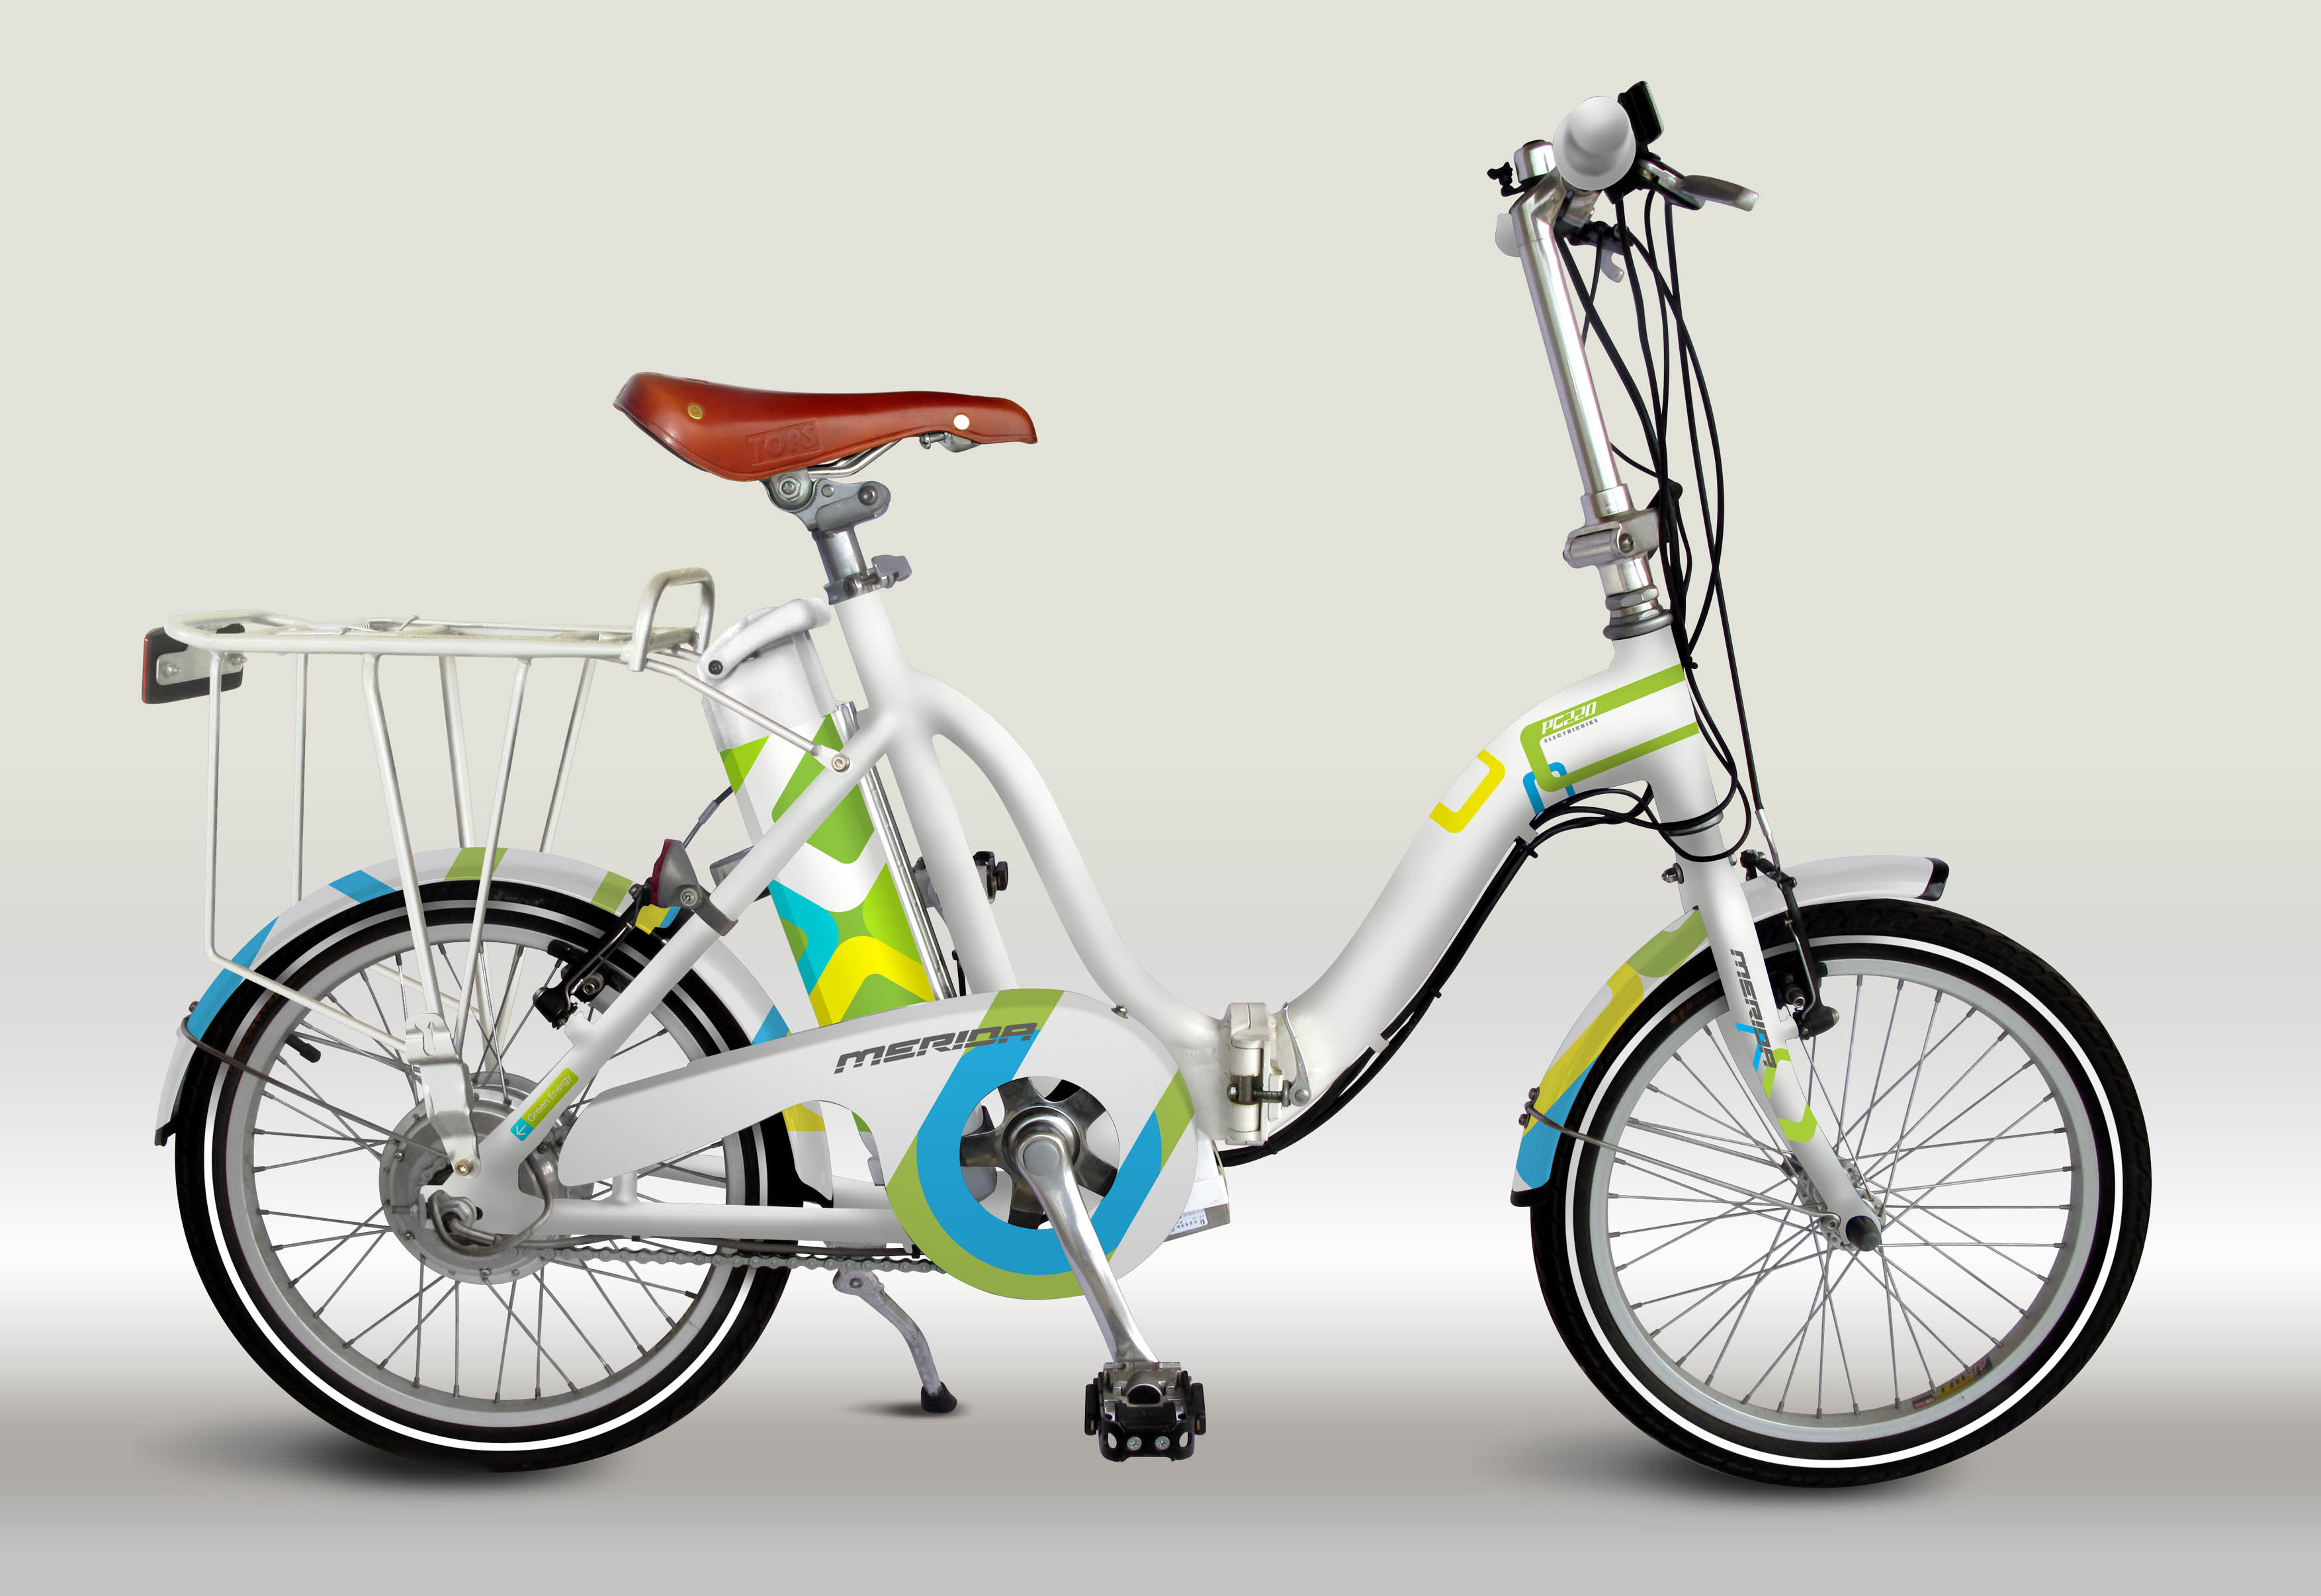 Folding E-bike  / MERIDA INDUSTRY CO., Ltd.